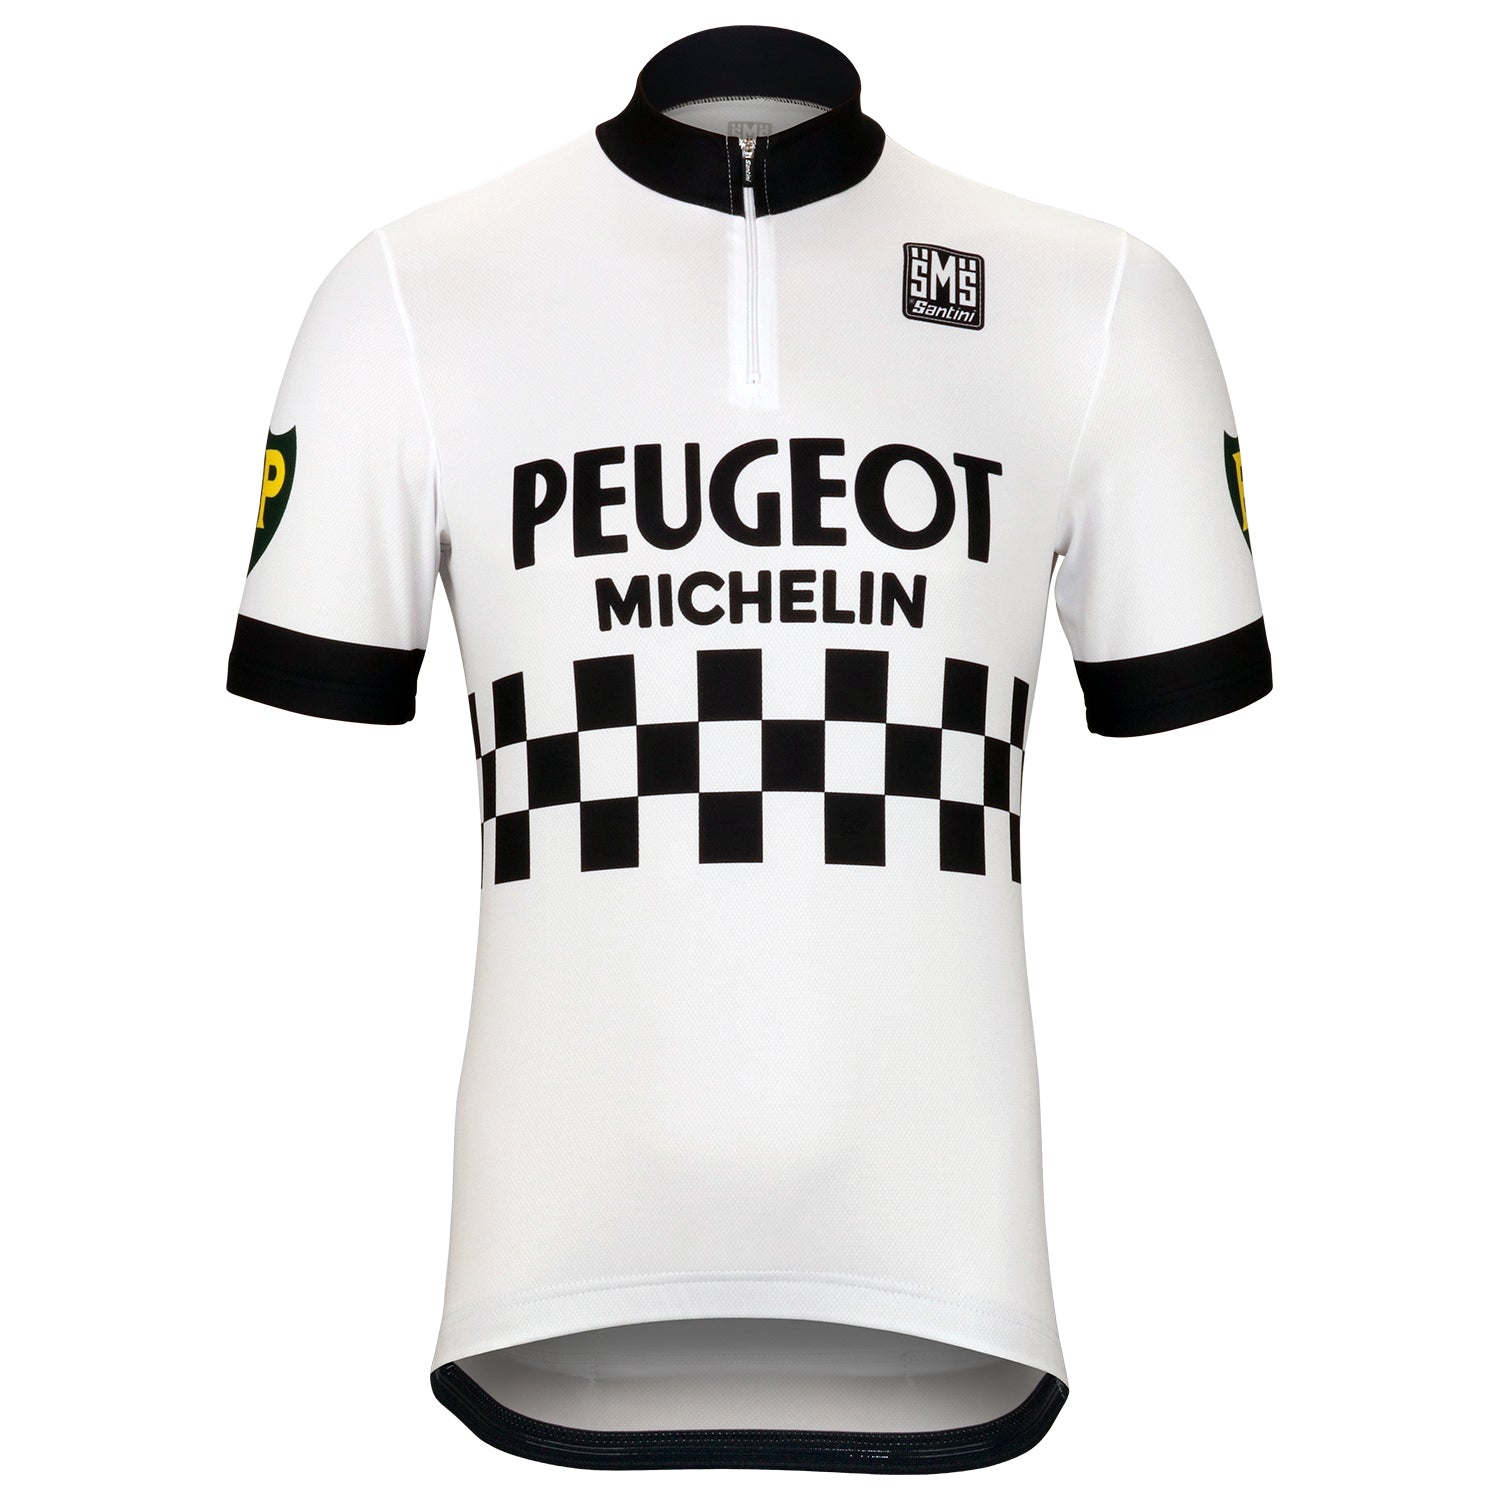 Peugeot BP Michelin Retro Jersey